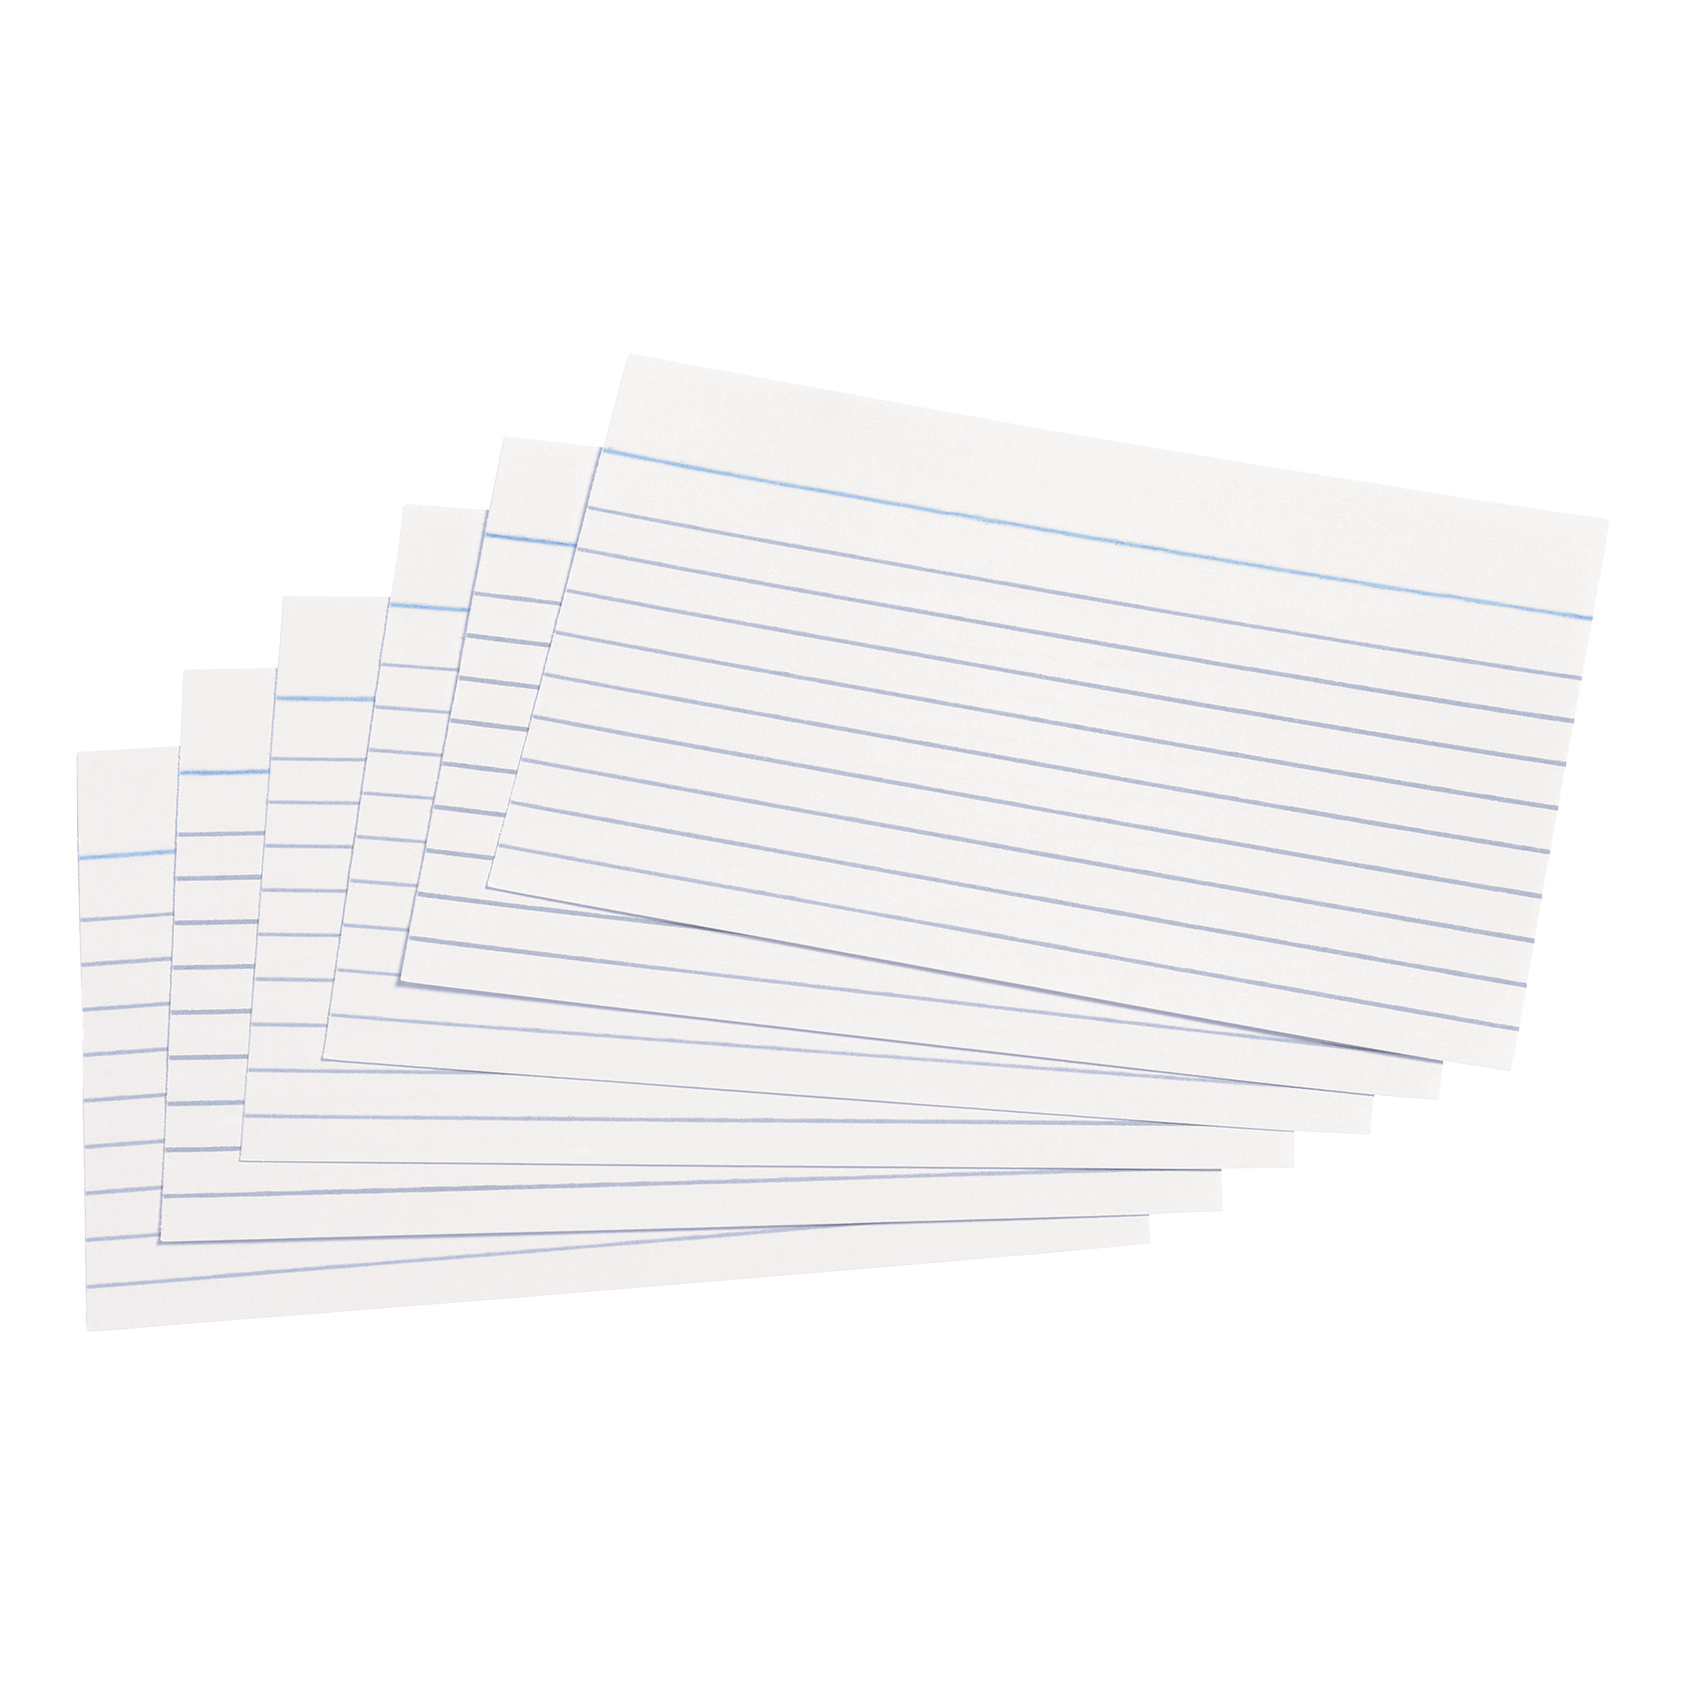 Record Cards 5 Star Office Record Cards Ruled Both Sides 5x3in 127x76mm White Pack 100